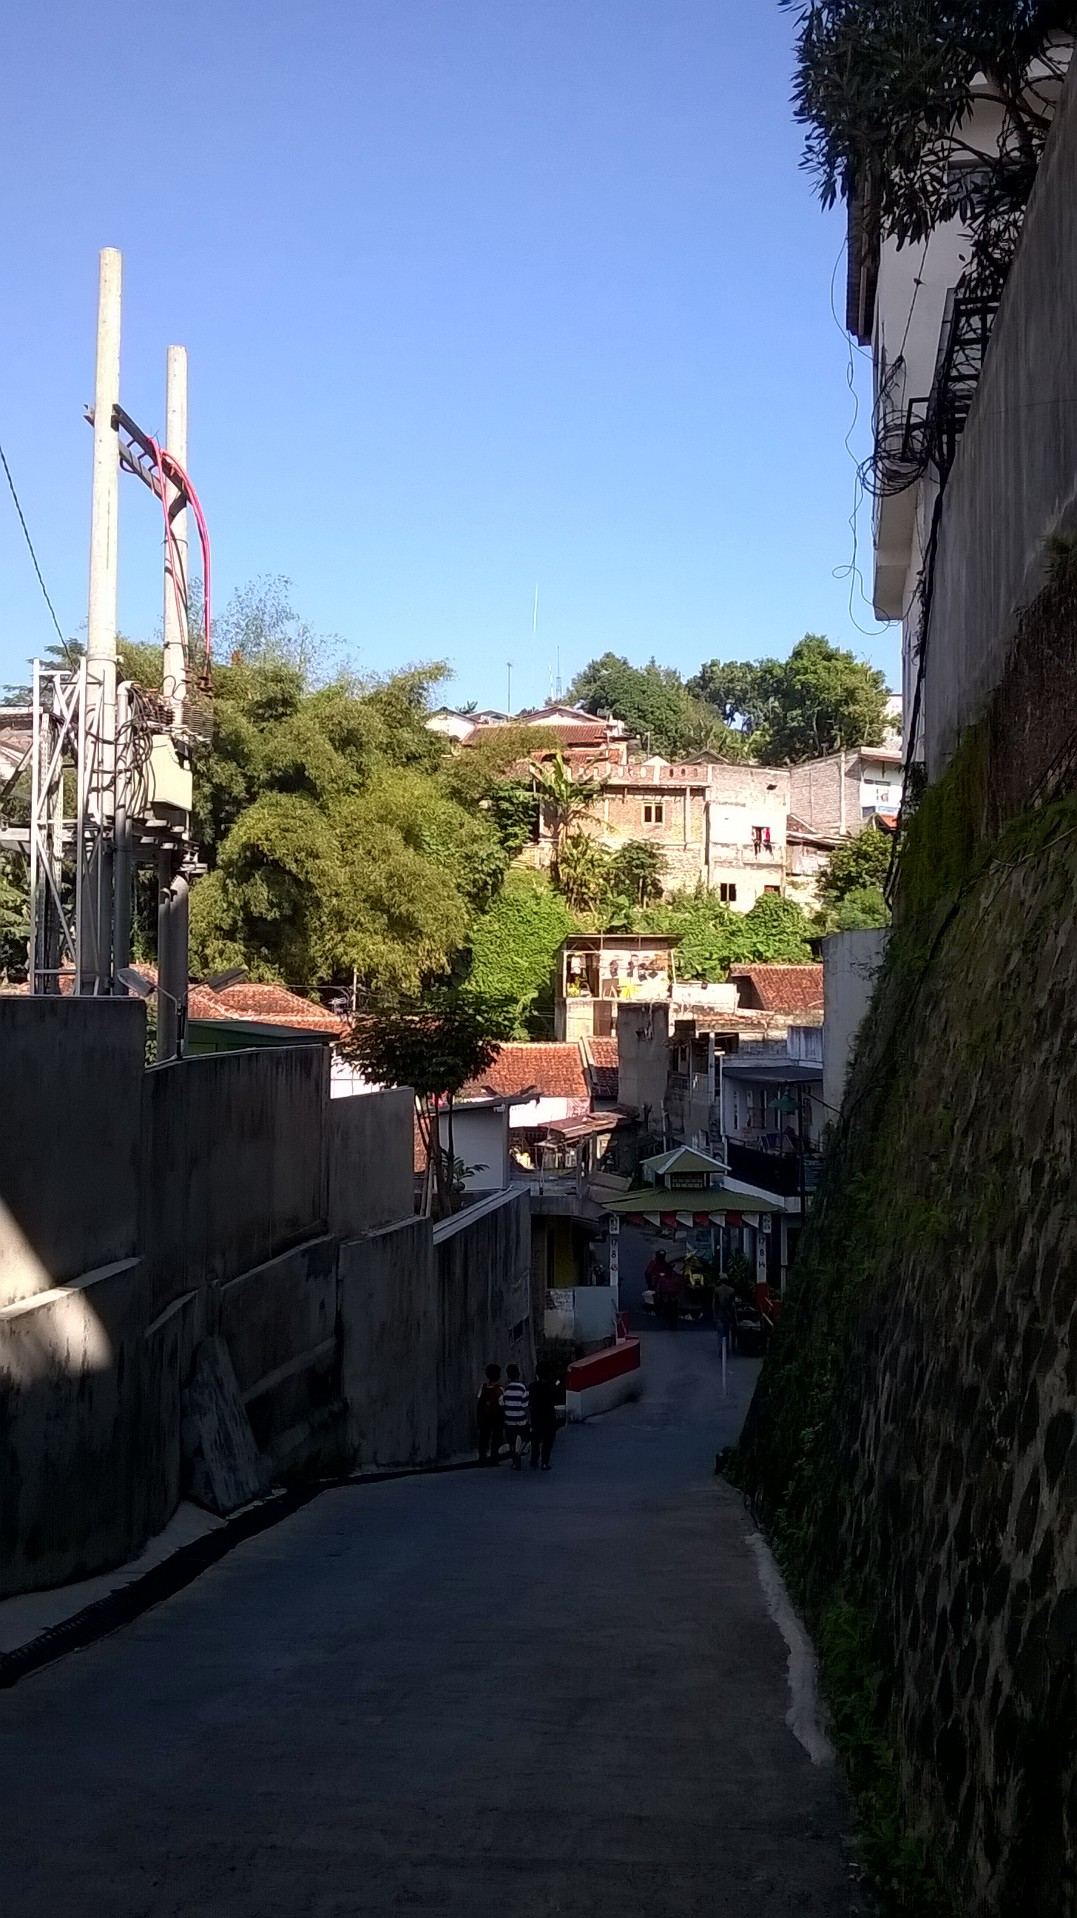 Another view of the alley, reminded me of a scene from Fast 5 movie